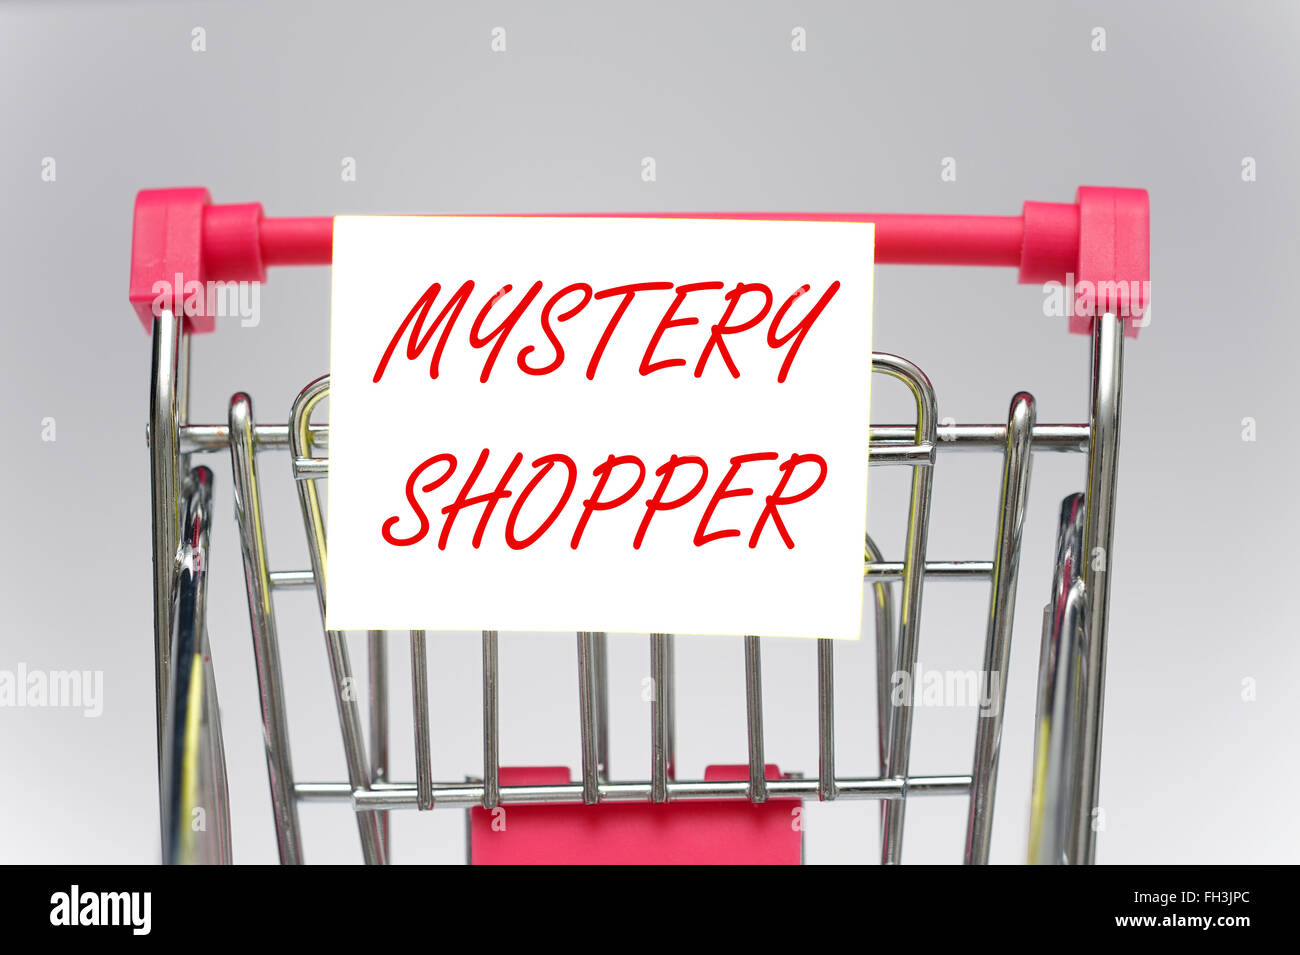 Mystery shopper on a supermarket shopping trolley - Stock Image